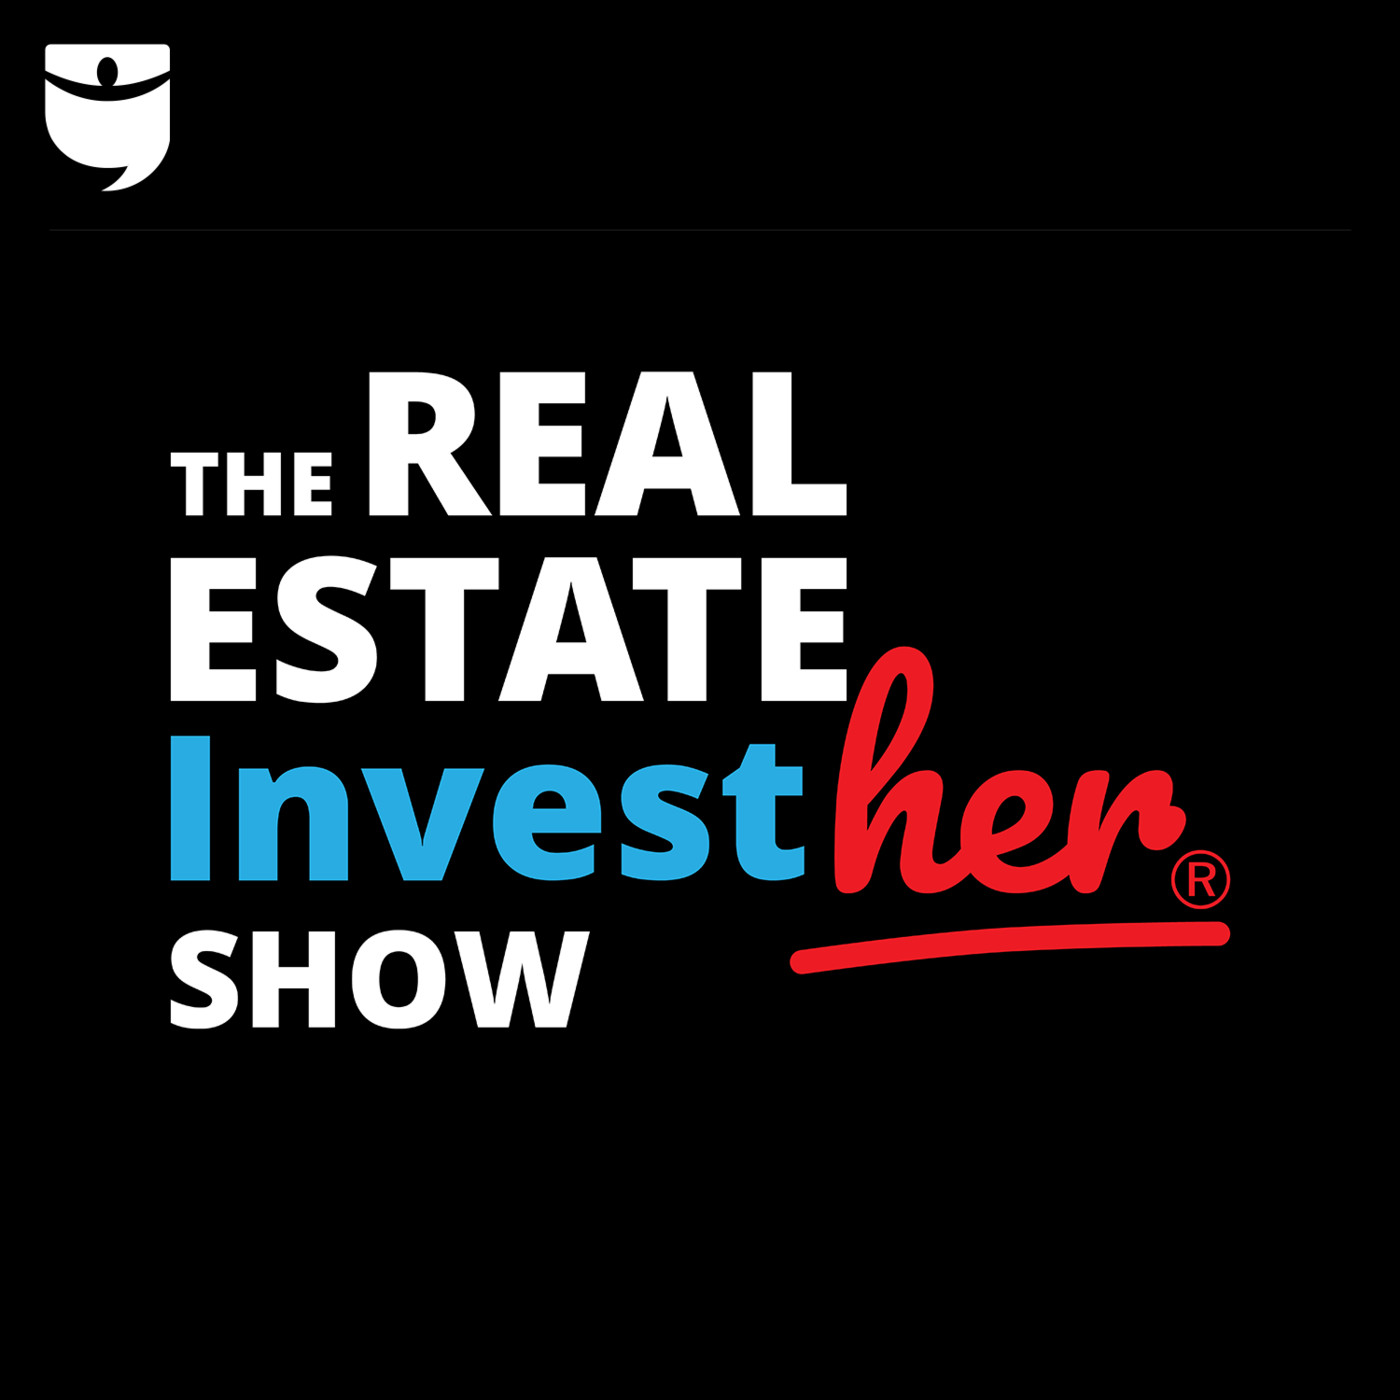 The Real Estate InvestHER Show